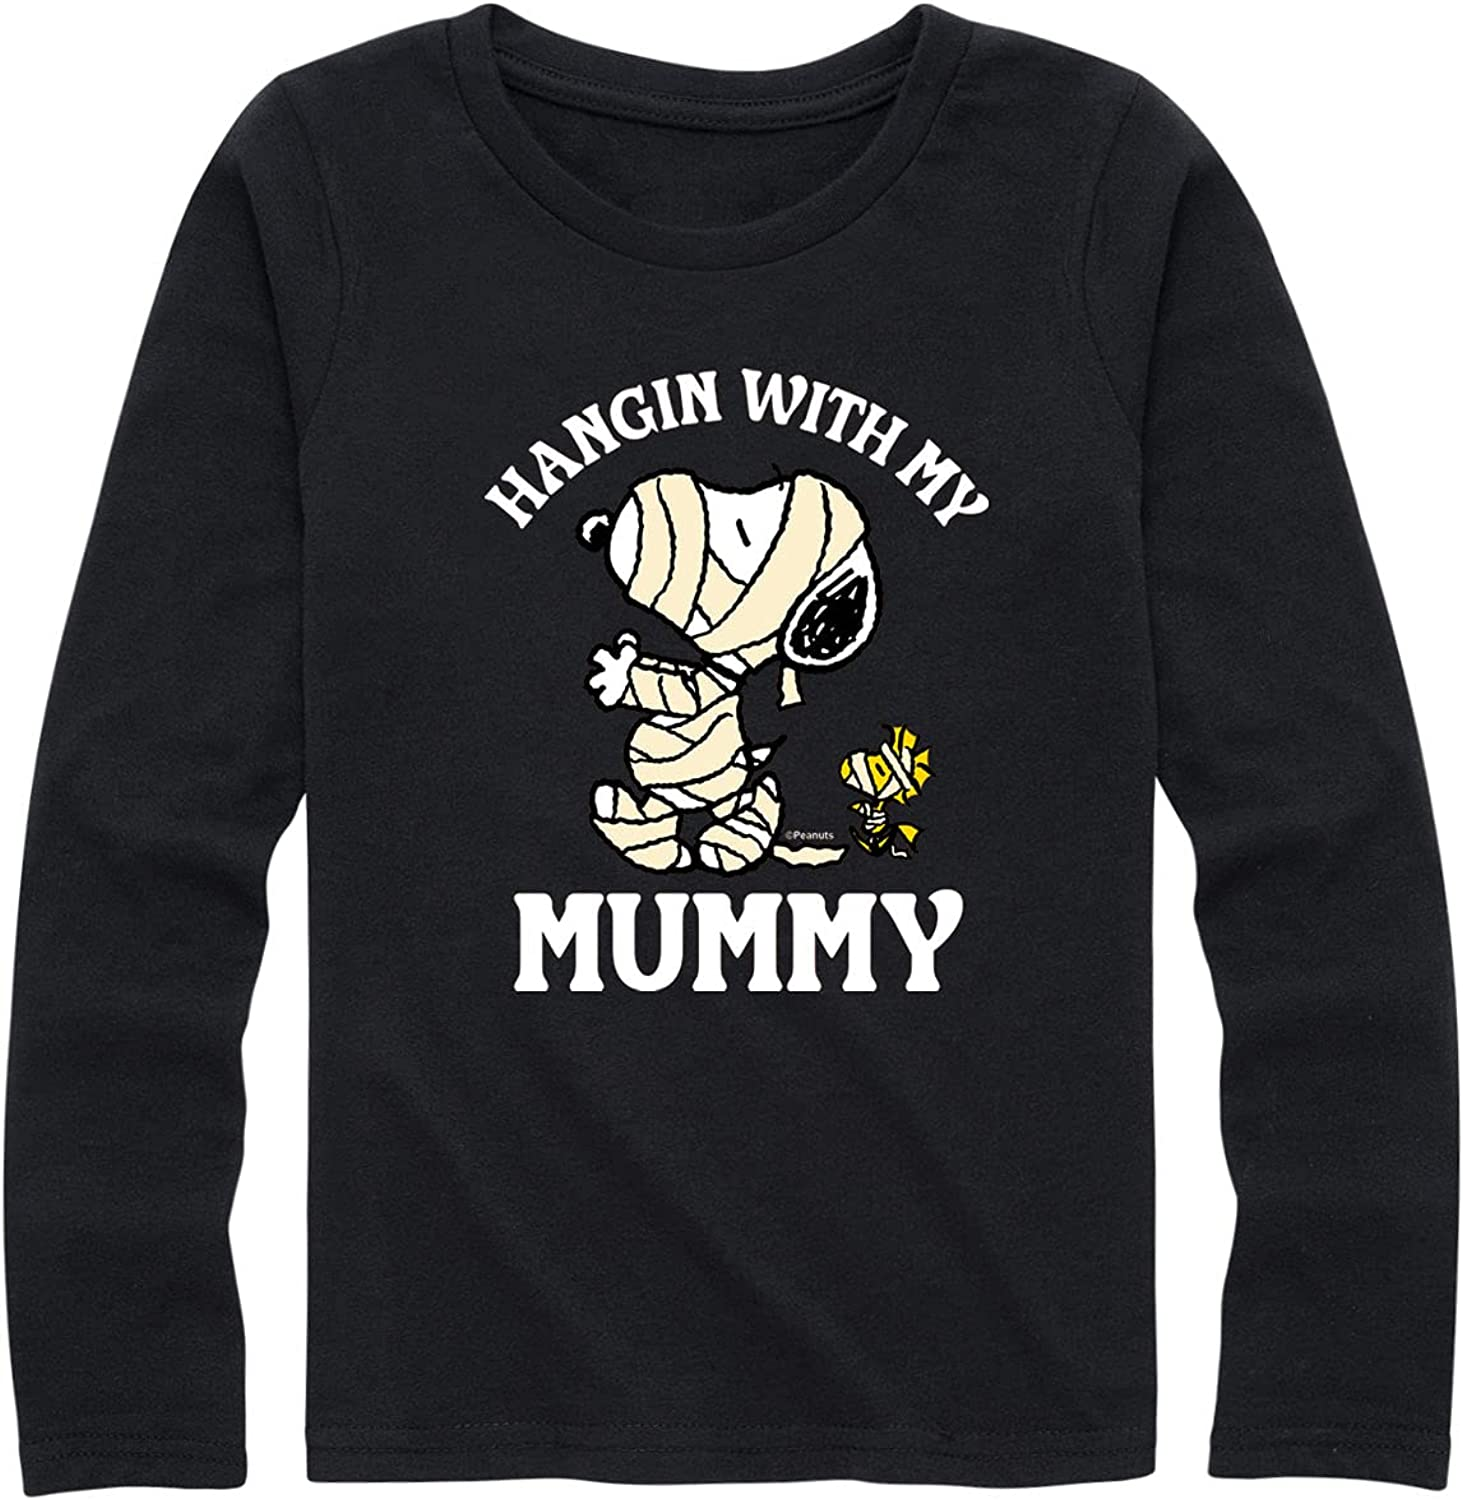 Peanuts - Hanging with My Mummy - Youth Girls Long Sleeve Graphic T-Shirt